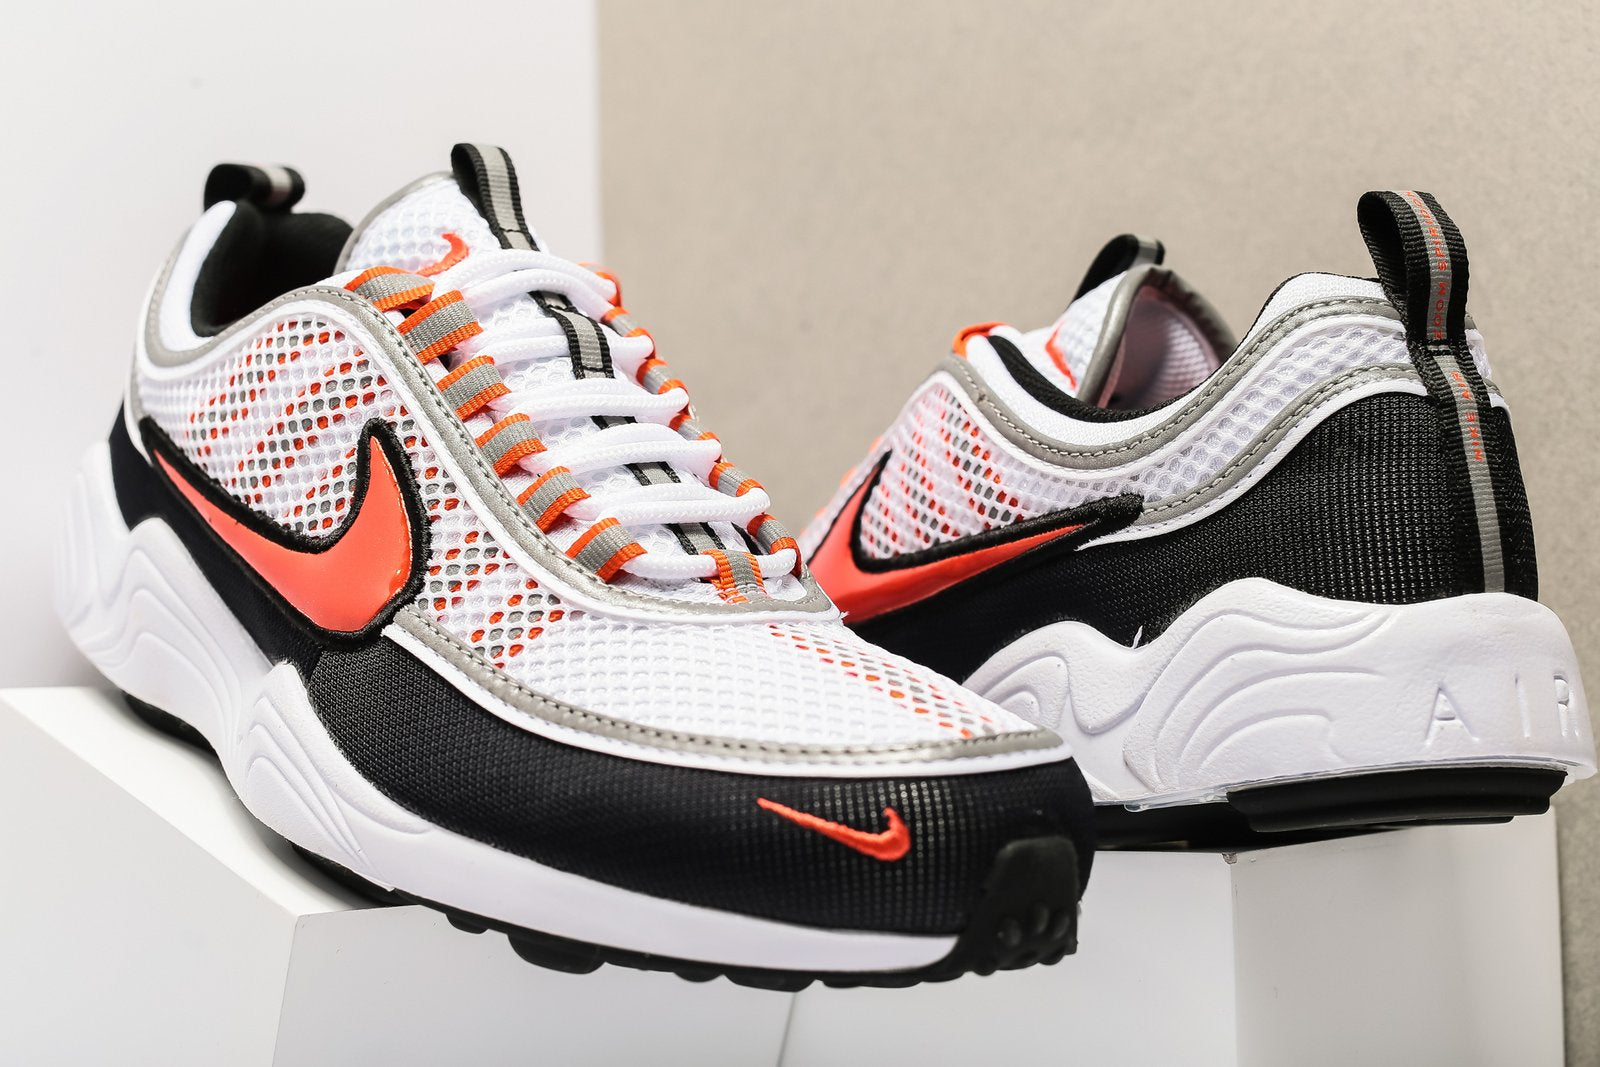 NIKE AIR ZOOM SPIRIDON '16 Oneness Boutique